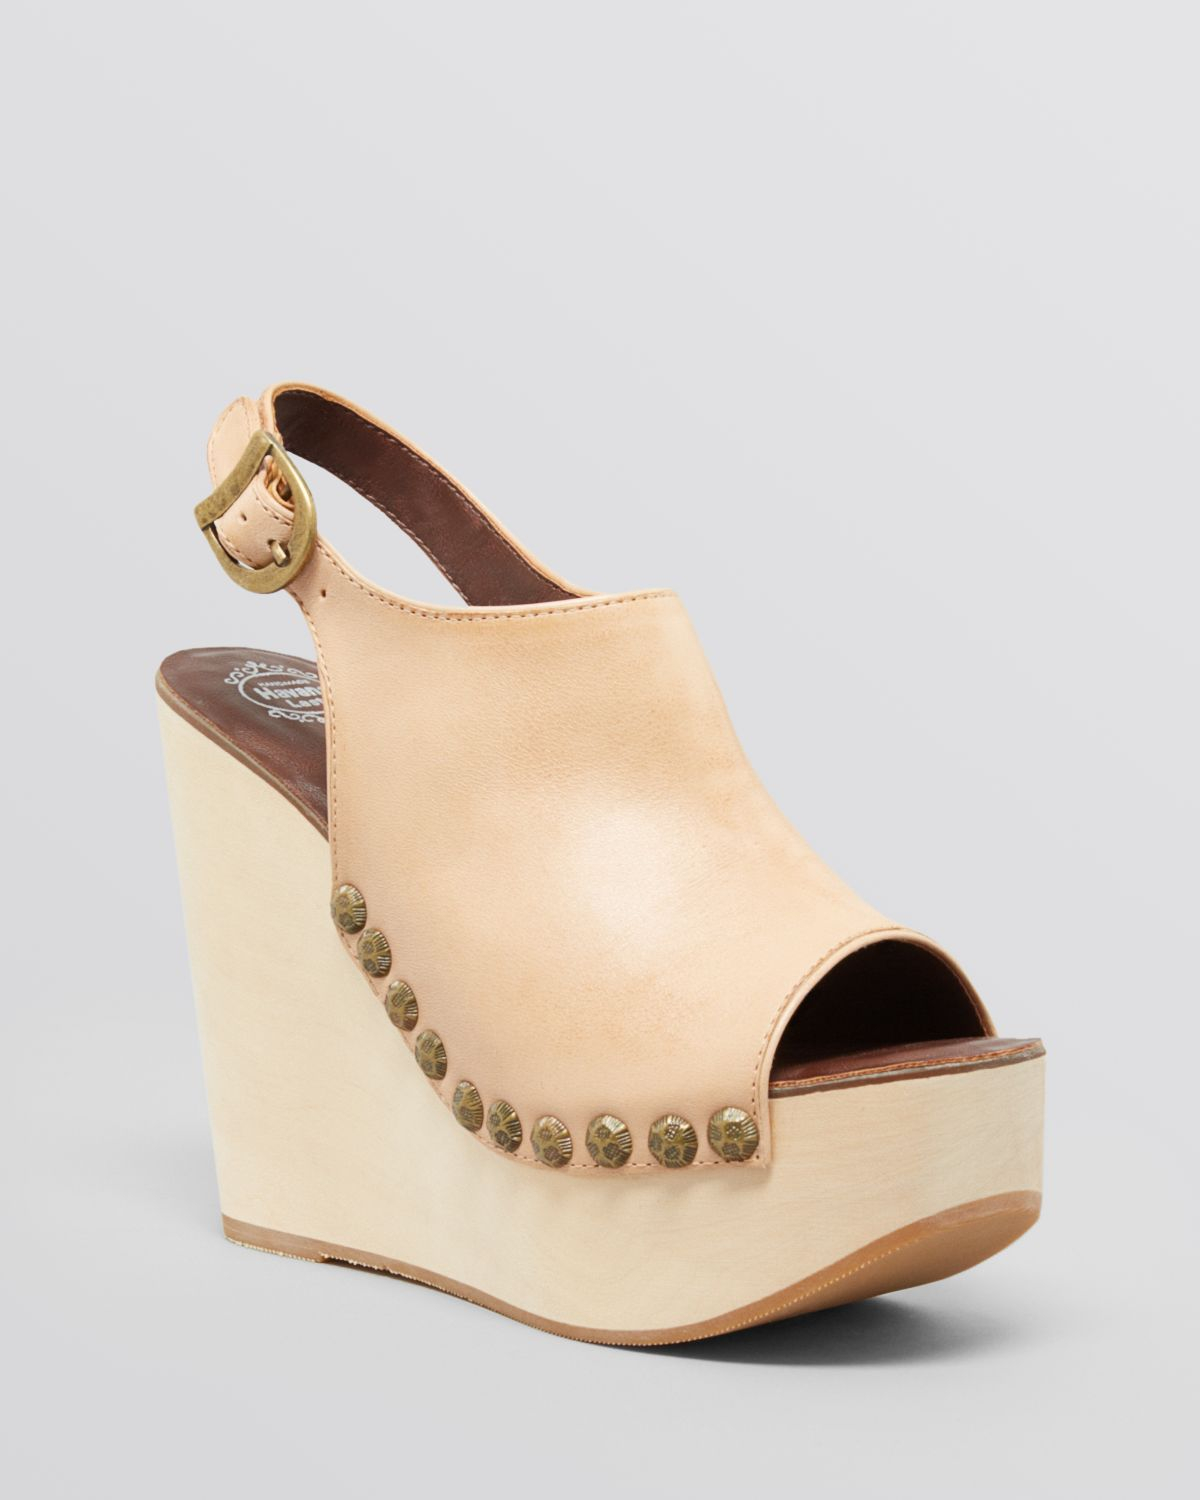 bb78477a3baa Lyst - Jeffrey Campbell Open Toe Platform Wedge Sandals Snick in Natural